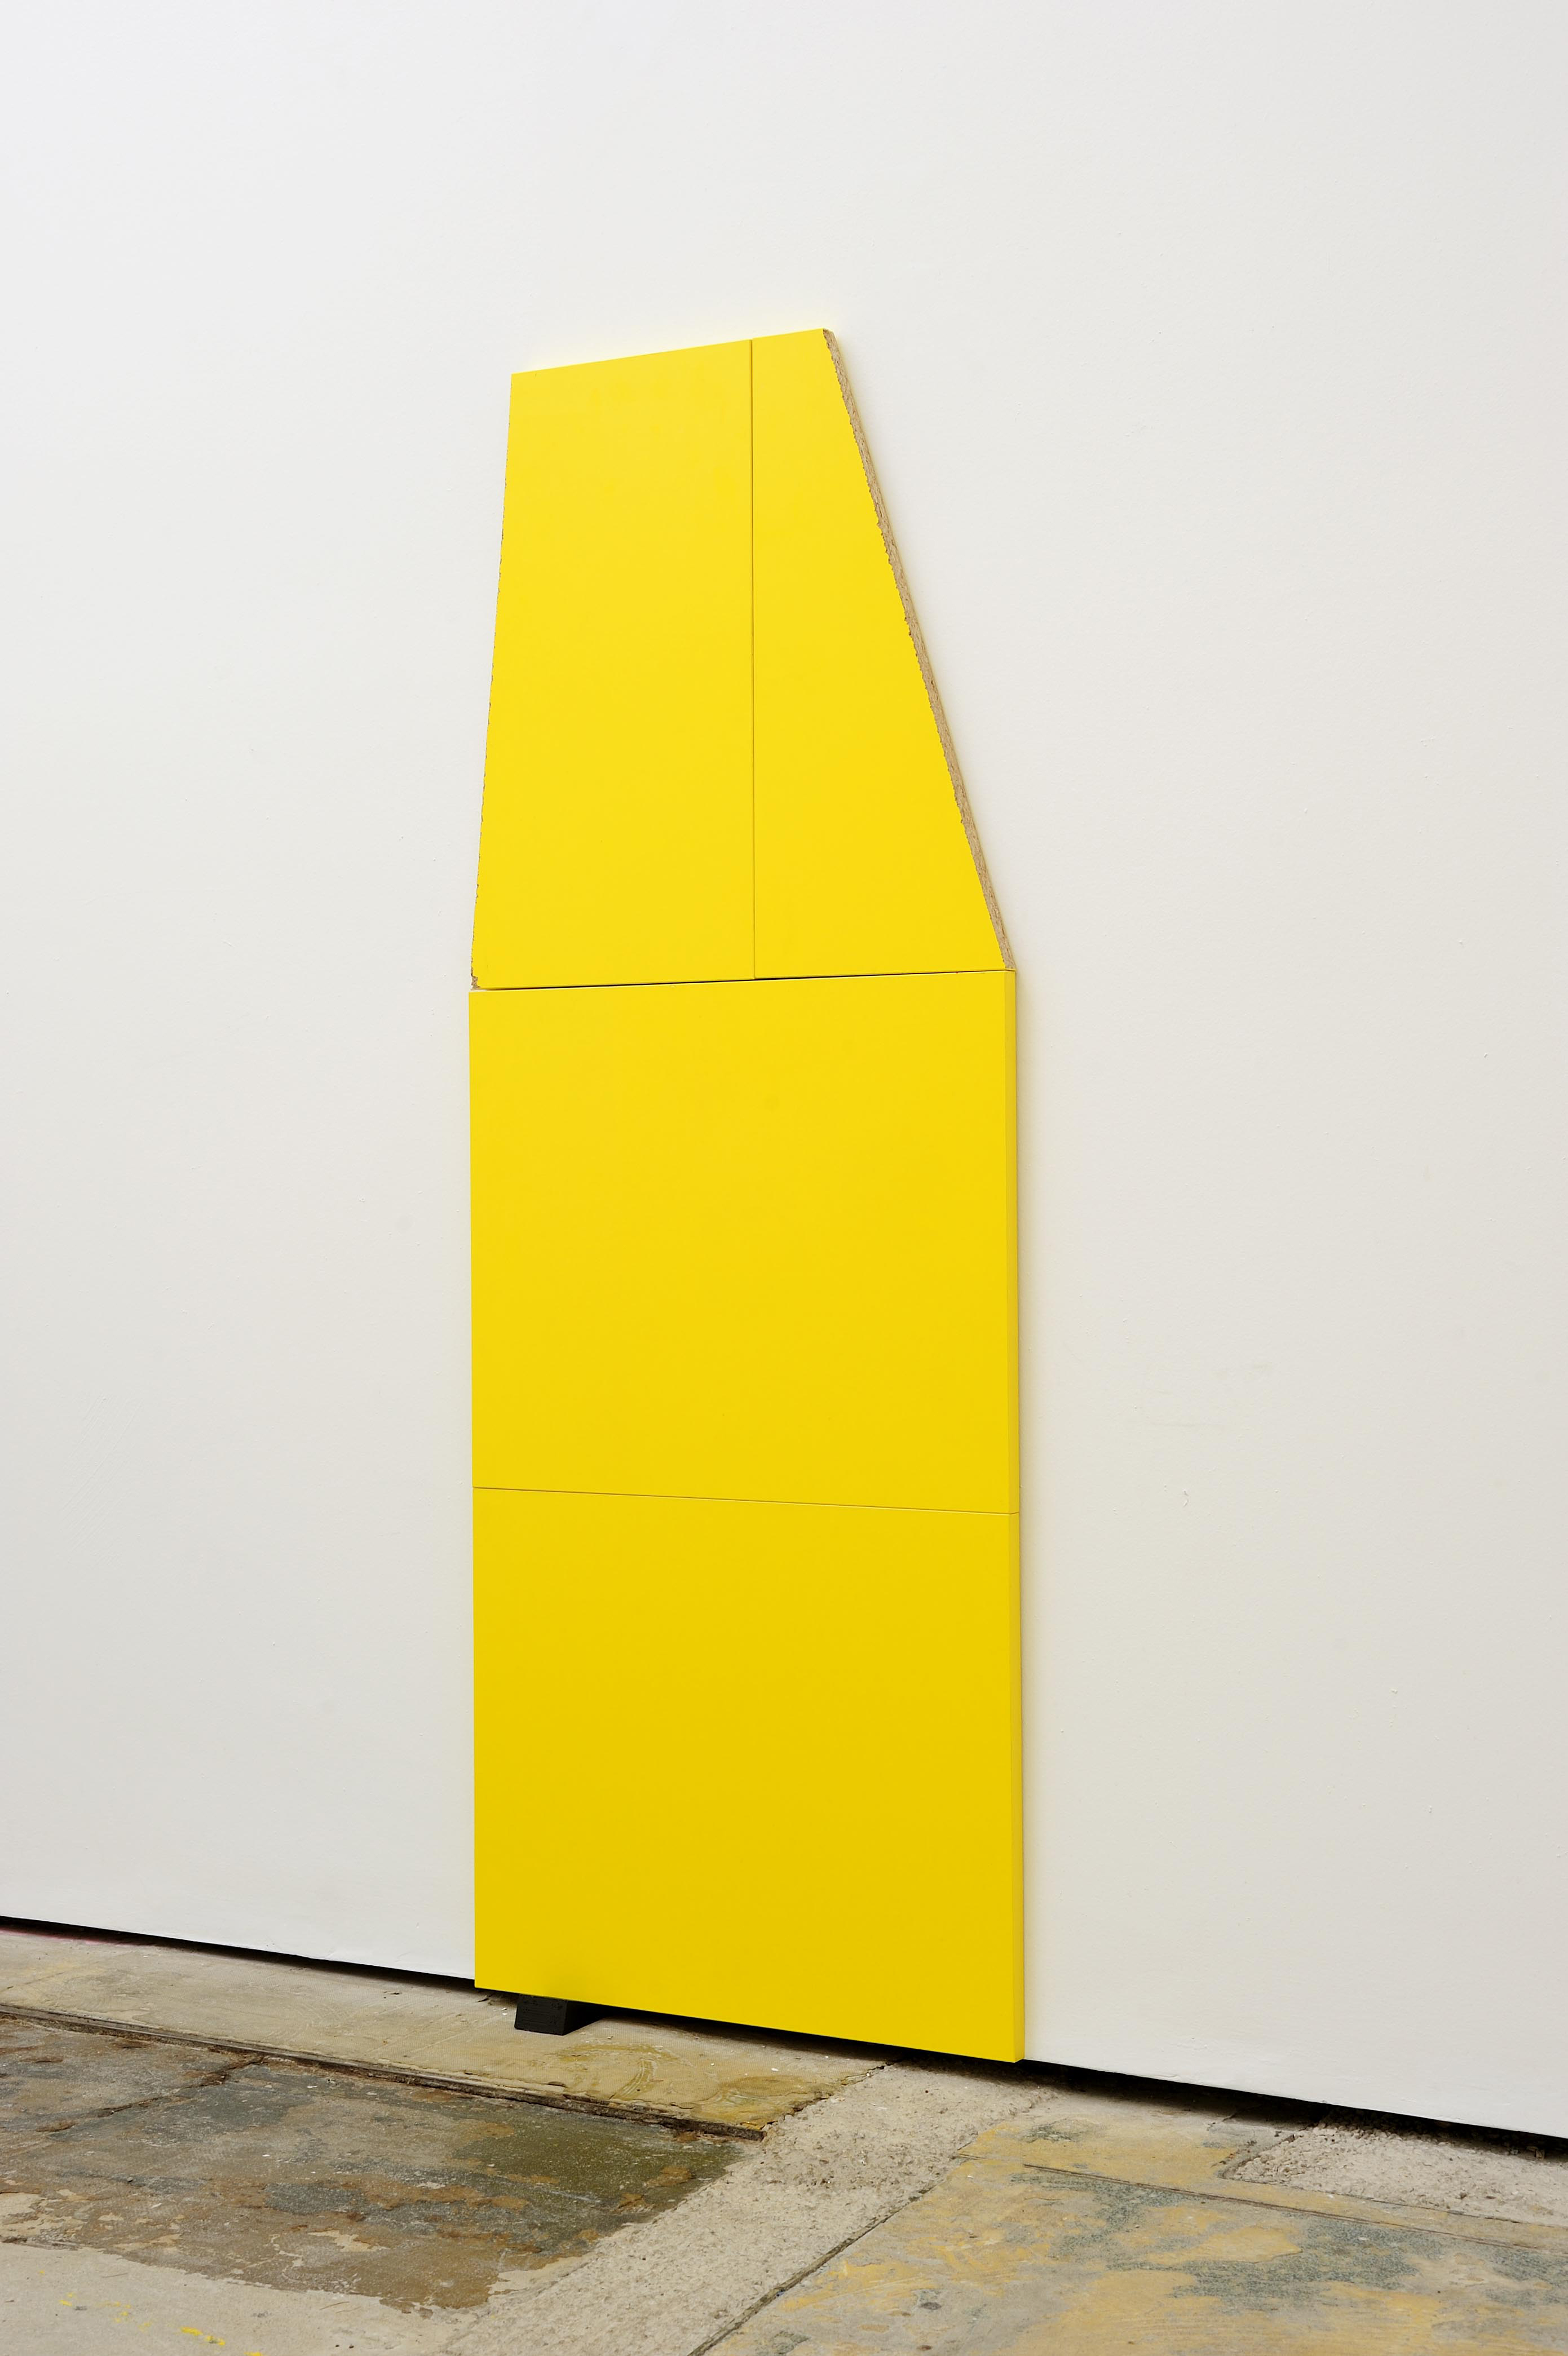 Untitled (Wedge)